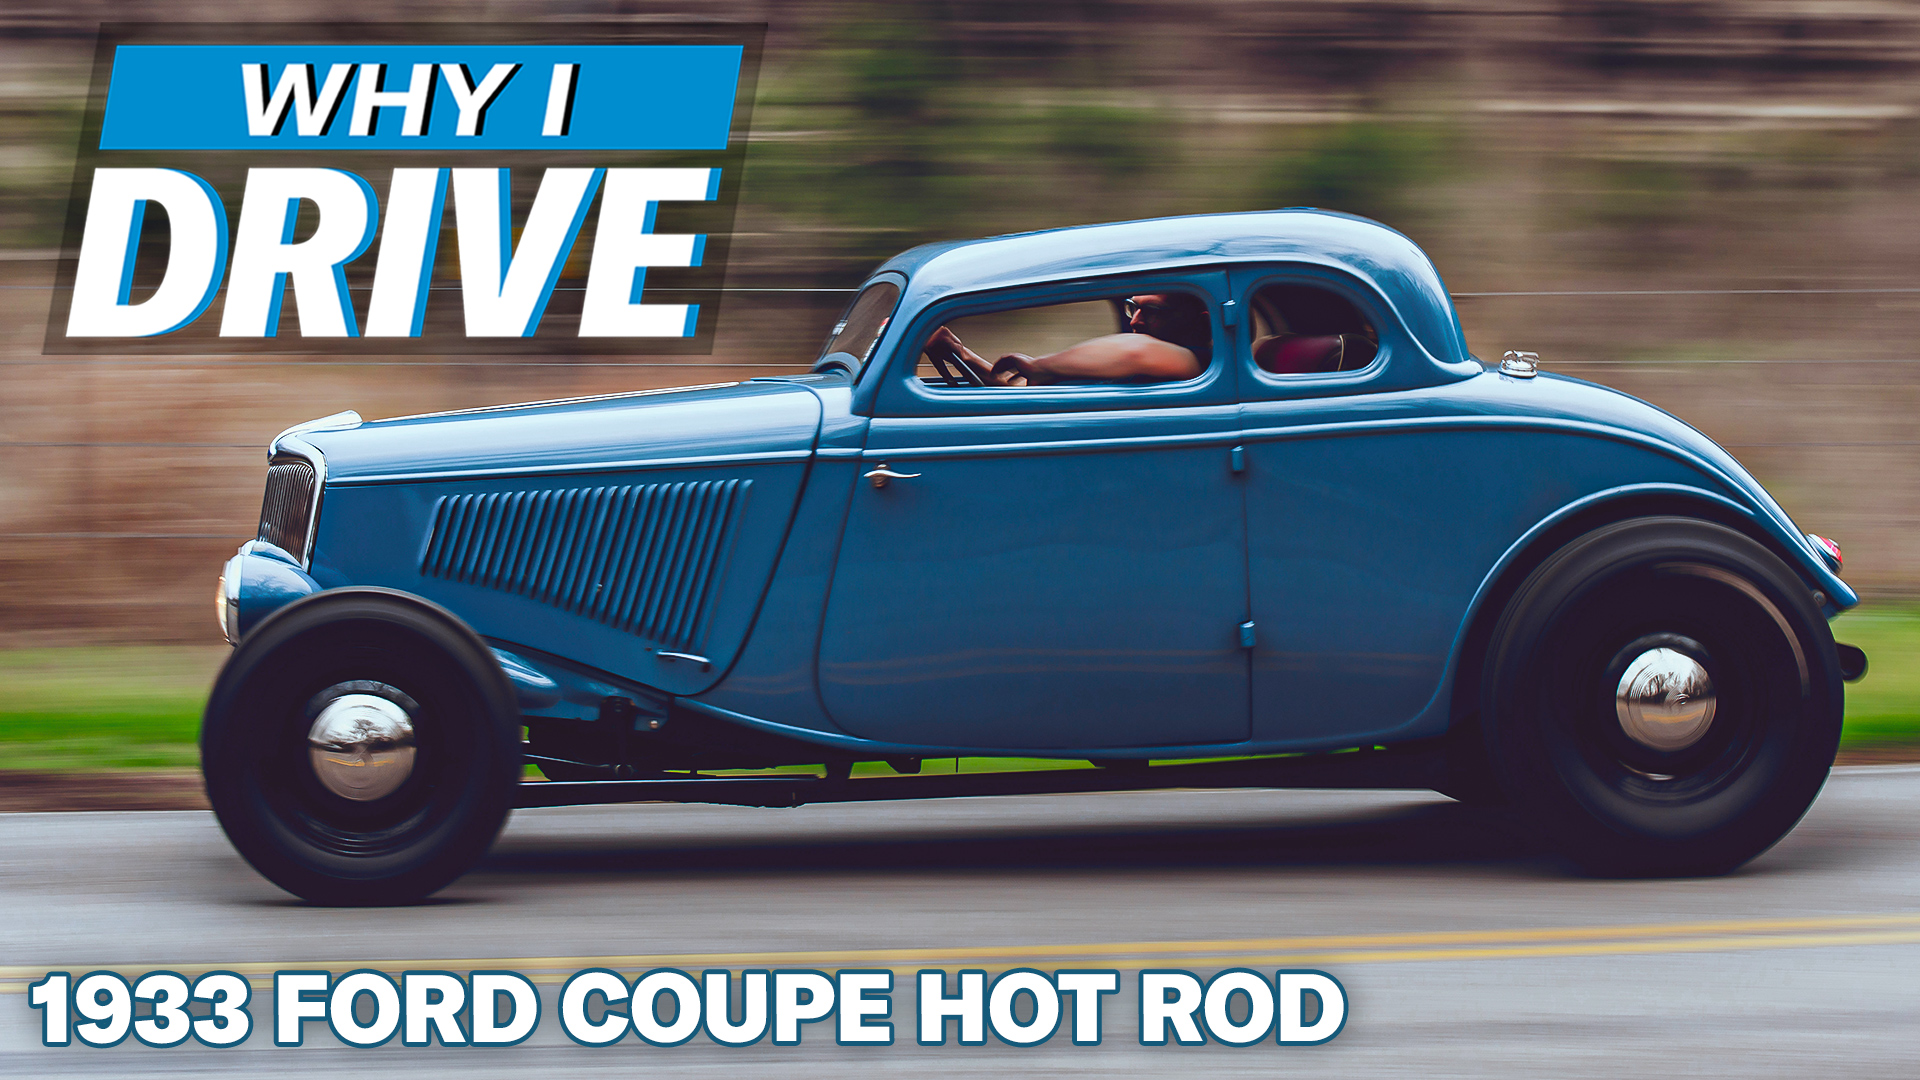 1933 Ford Coupe why i drive show lead